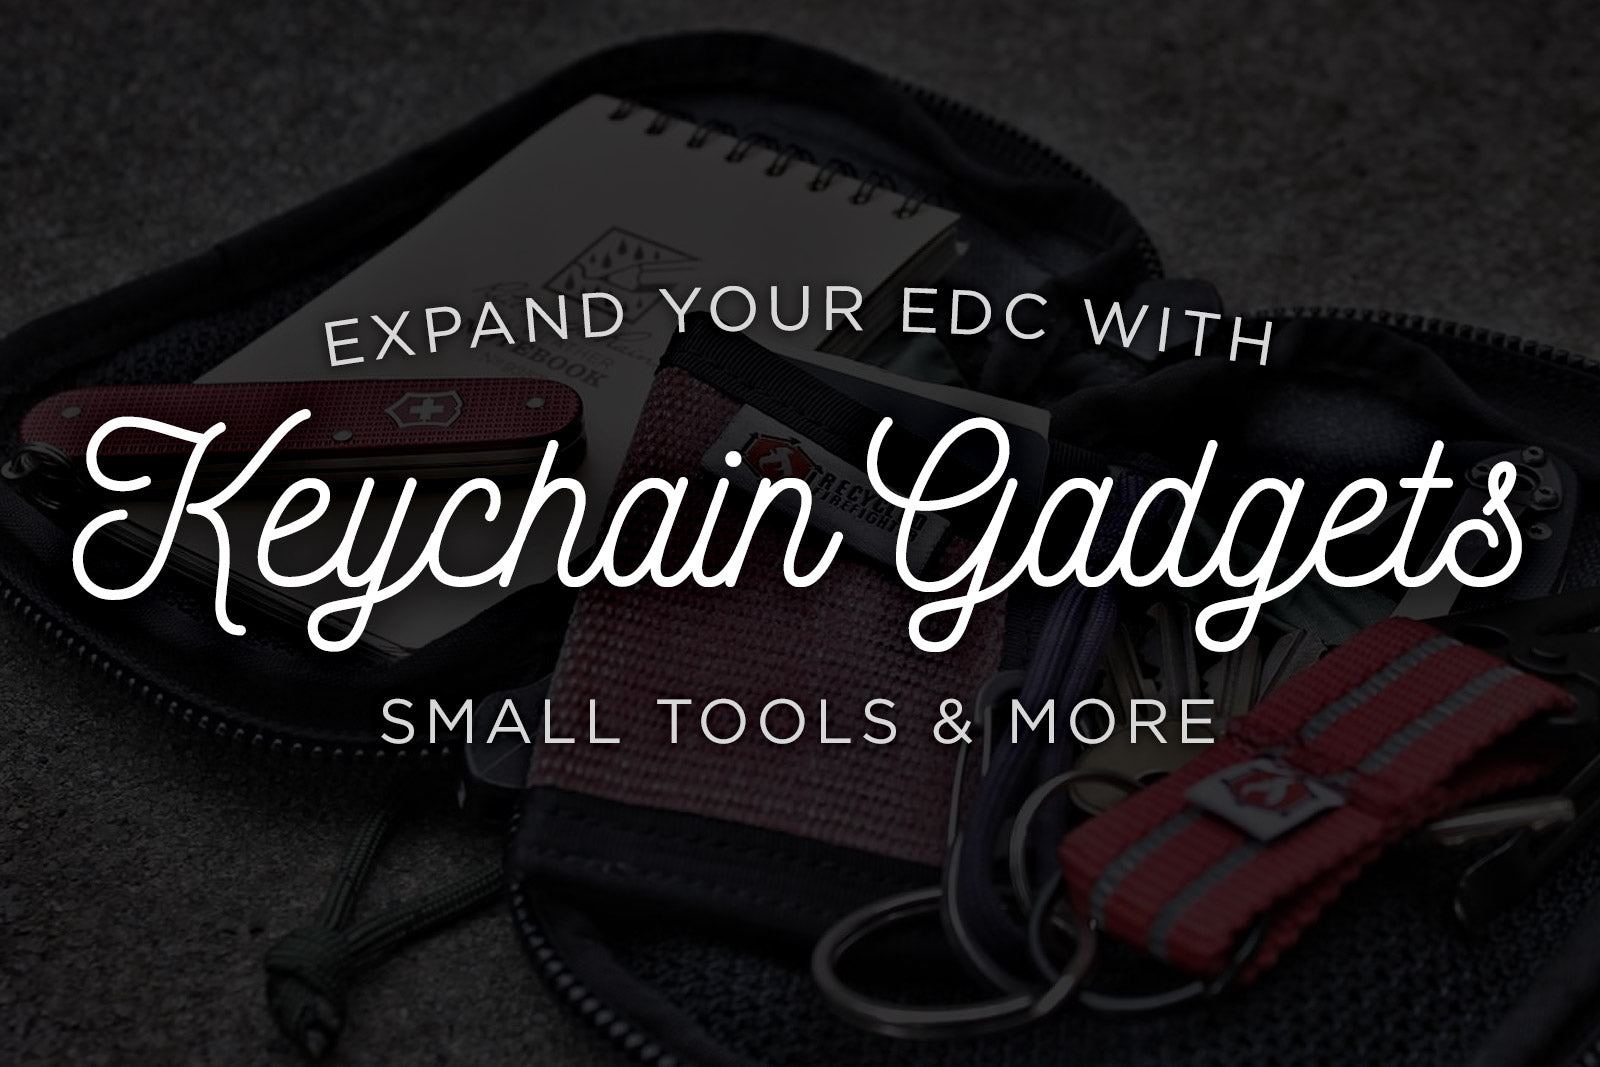 Top EDC Keychain Gadgets